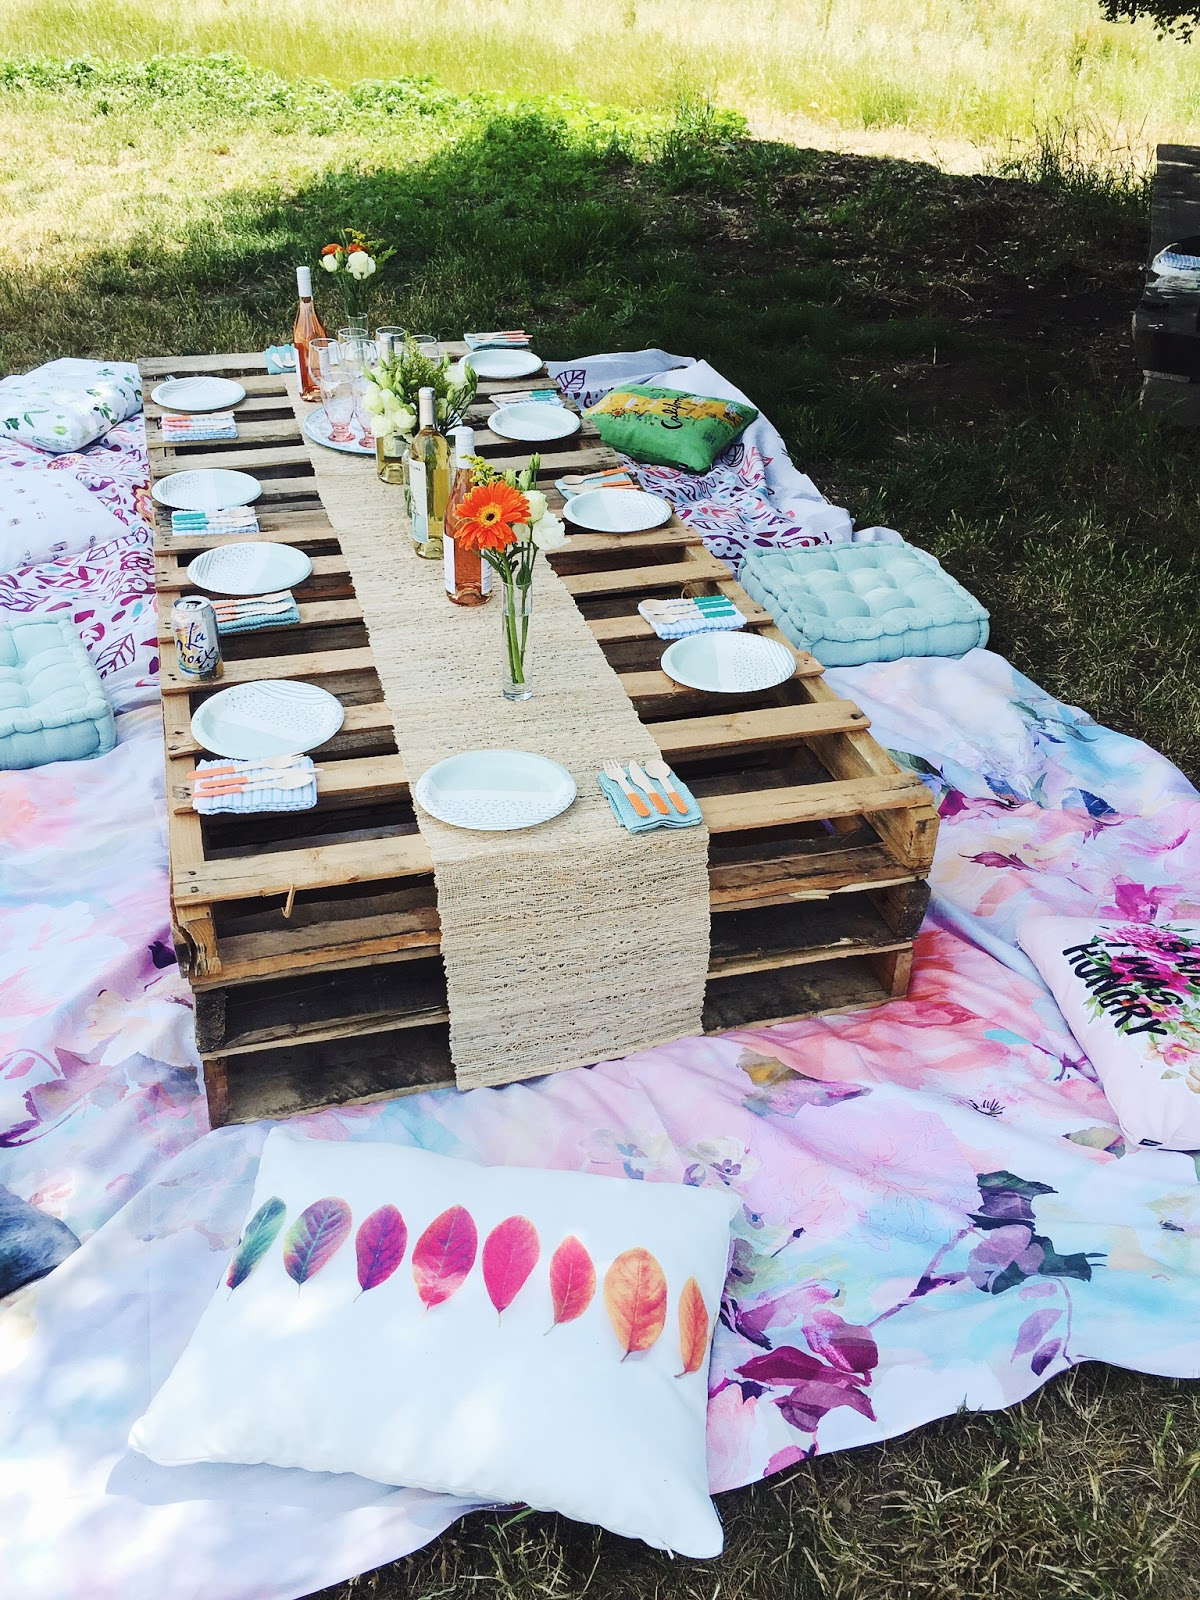 pinterest picnic idea, outdoor pillow picnic, society6 tapestries, palettes for picnic